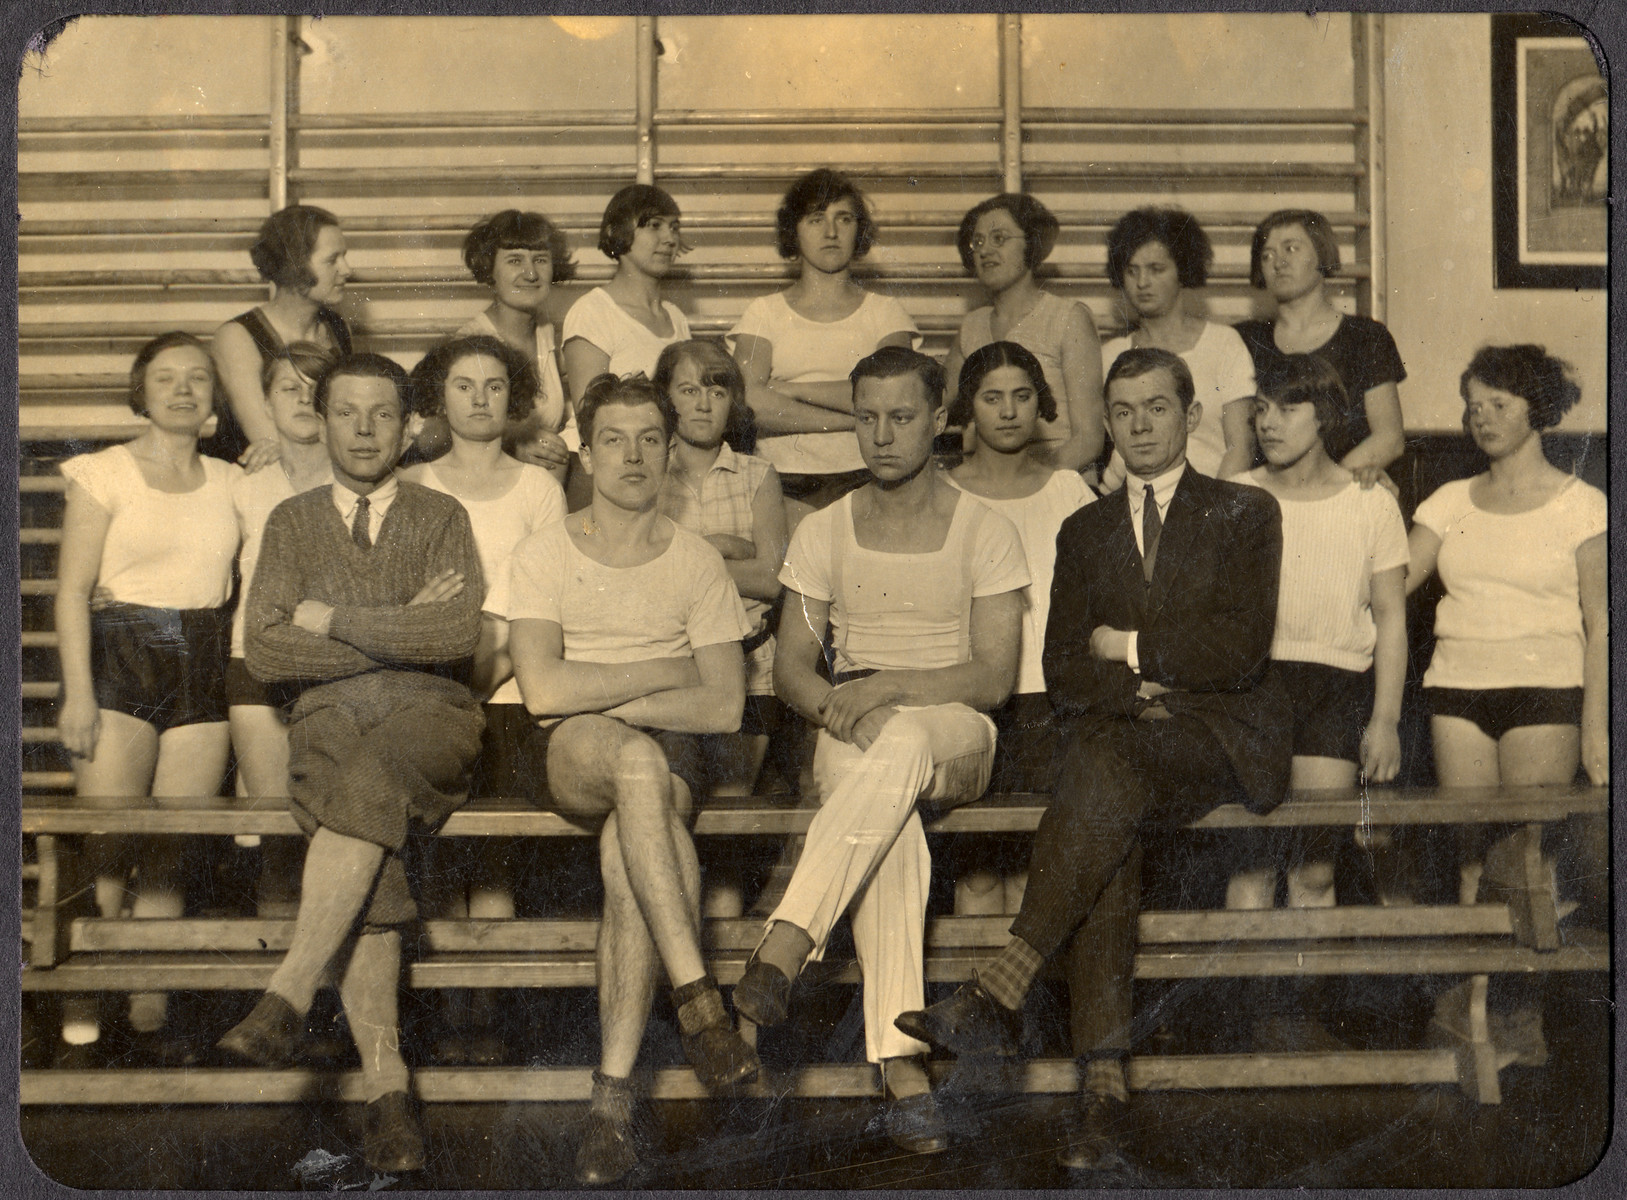 Members of a Deaf gymnastics club pose for a group portrait on the bleachers.  Among those pictured are Hilda Wiener (back row, far left) and Isadore Rattner (front row, second from left).